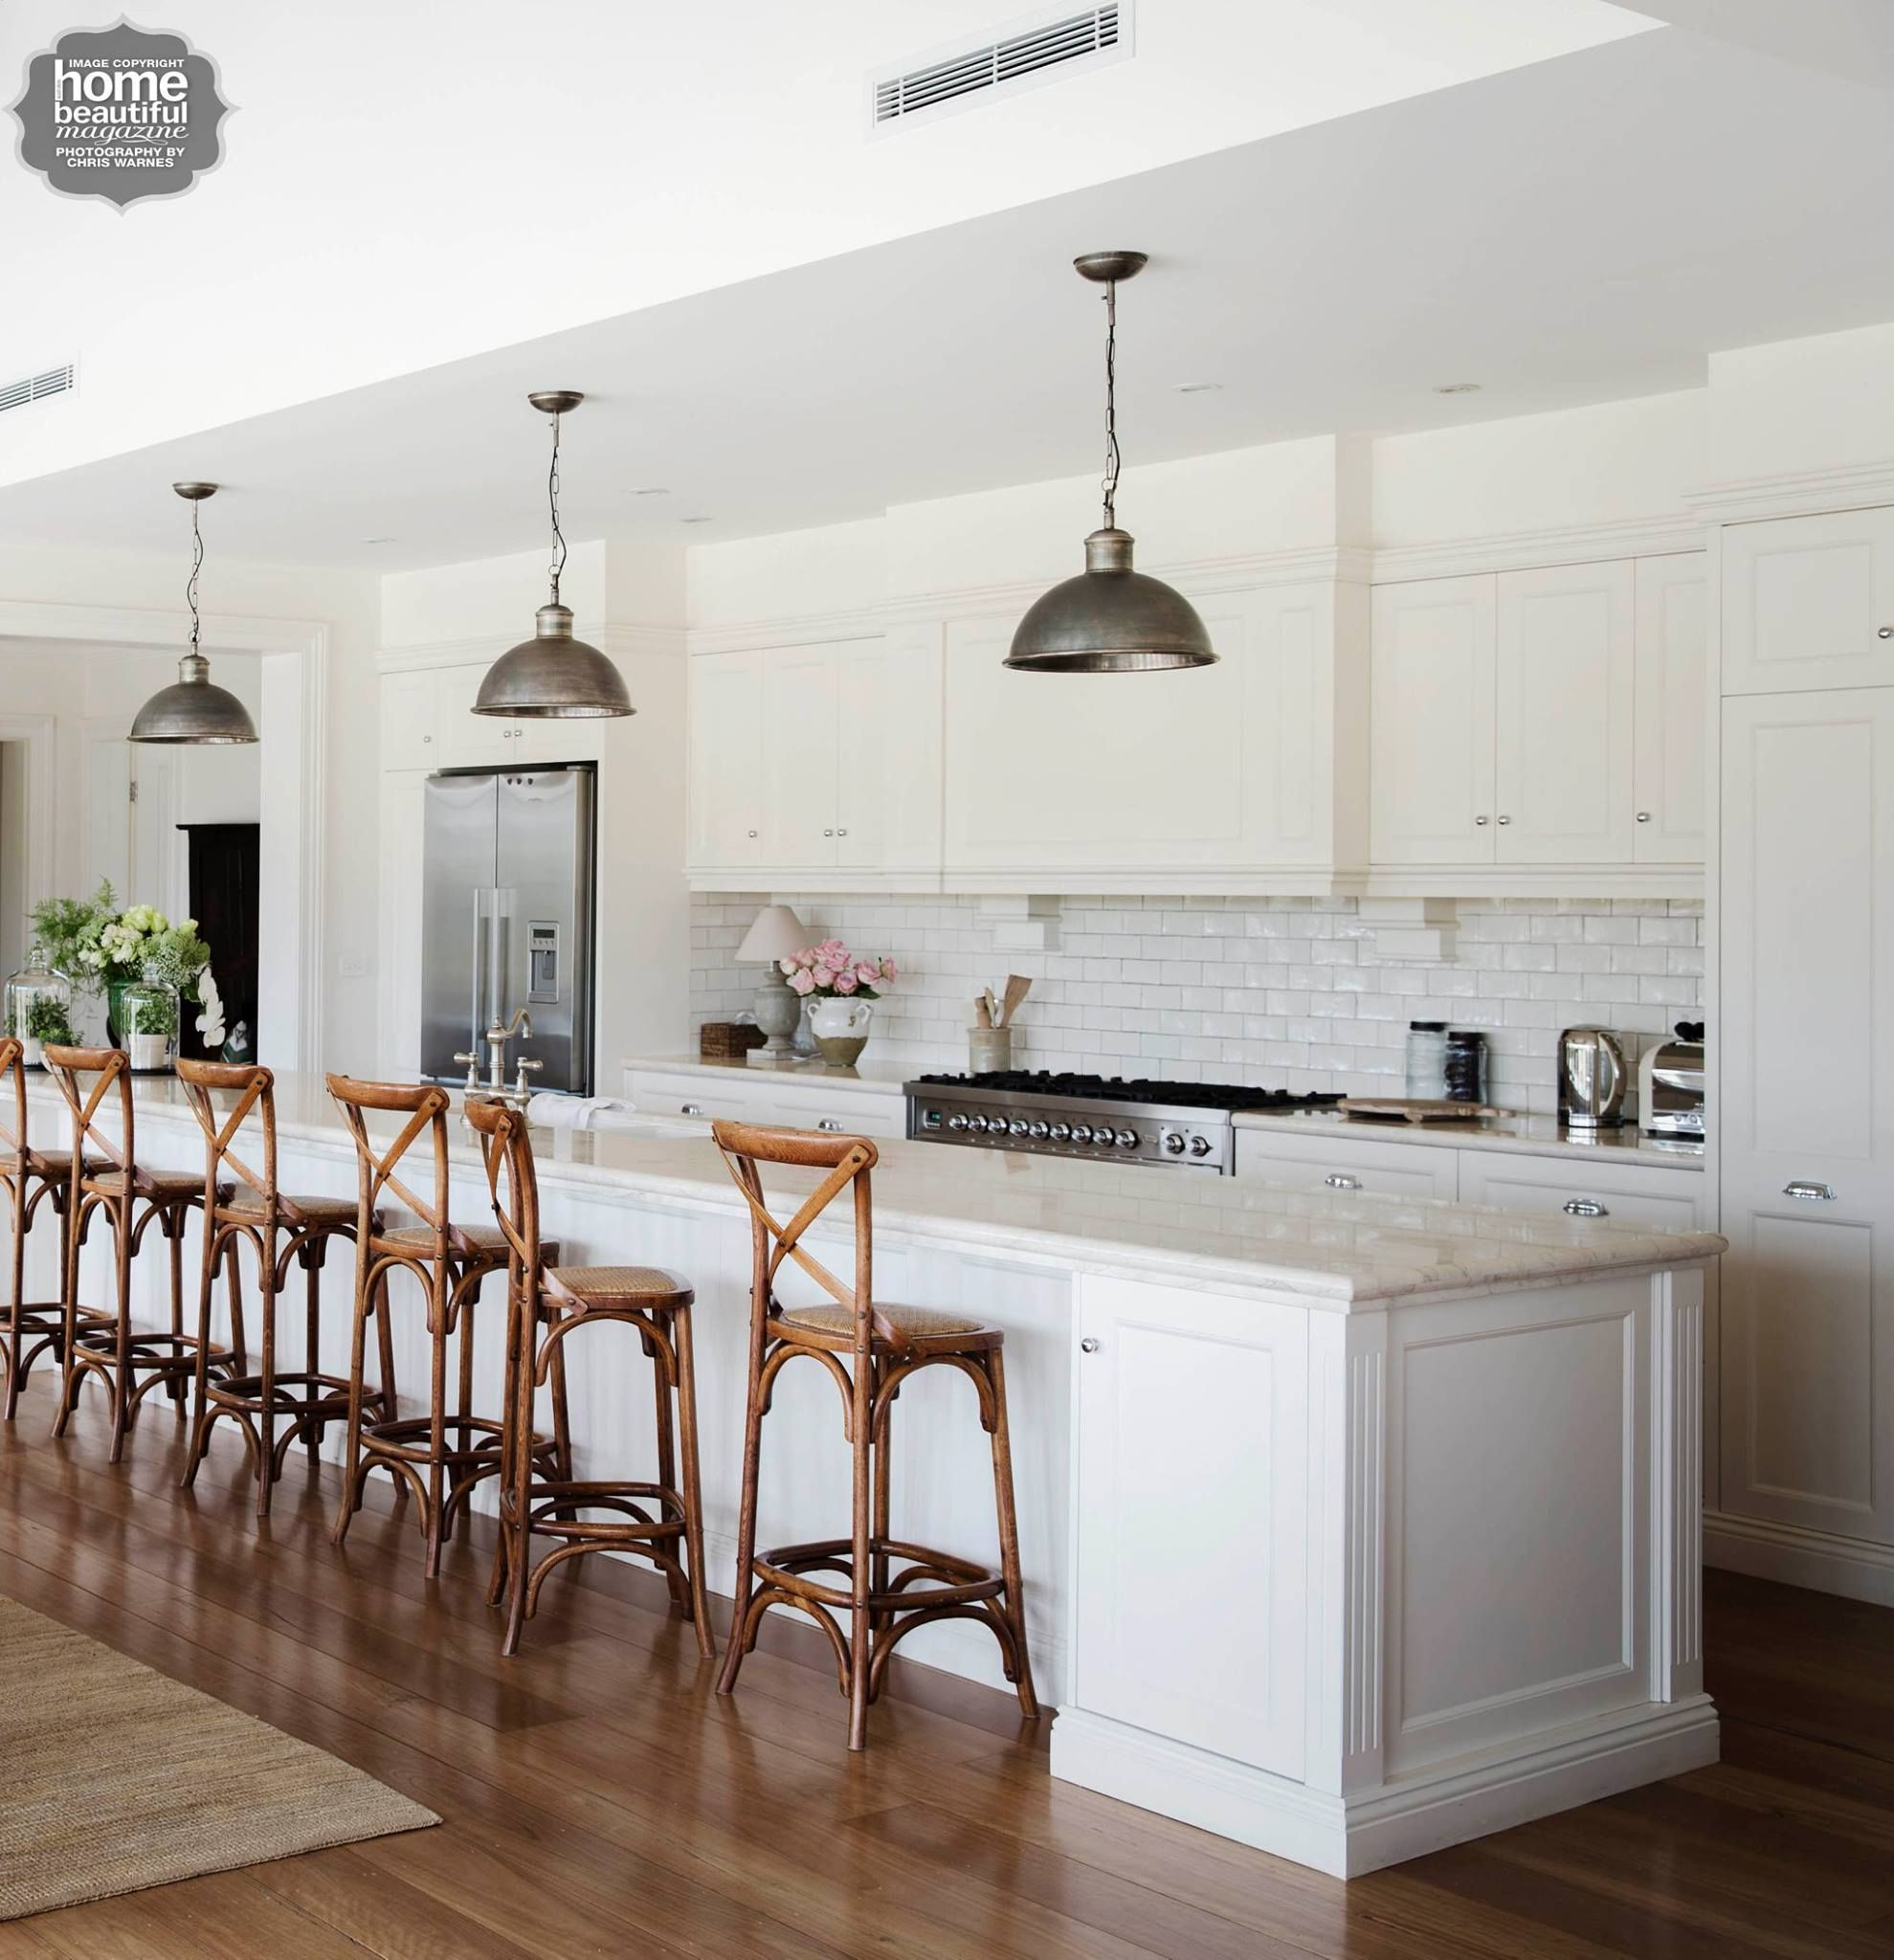 Tile texture, industrial lighting and appliances with wood chairs ...